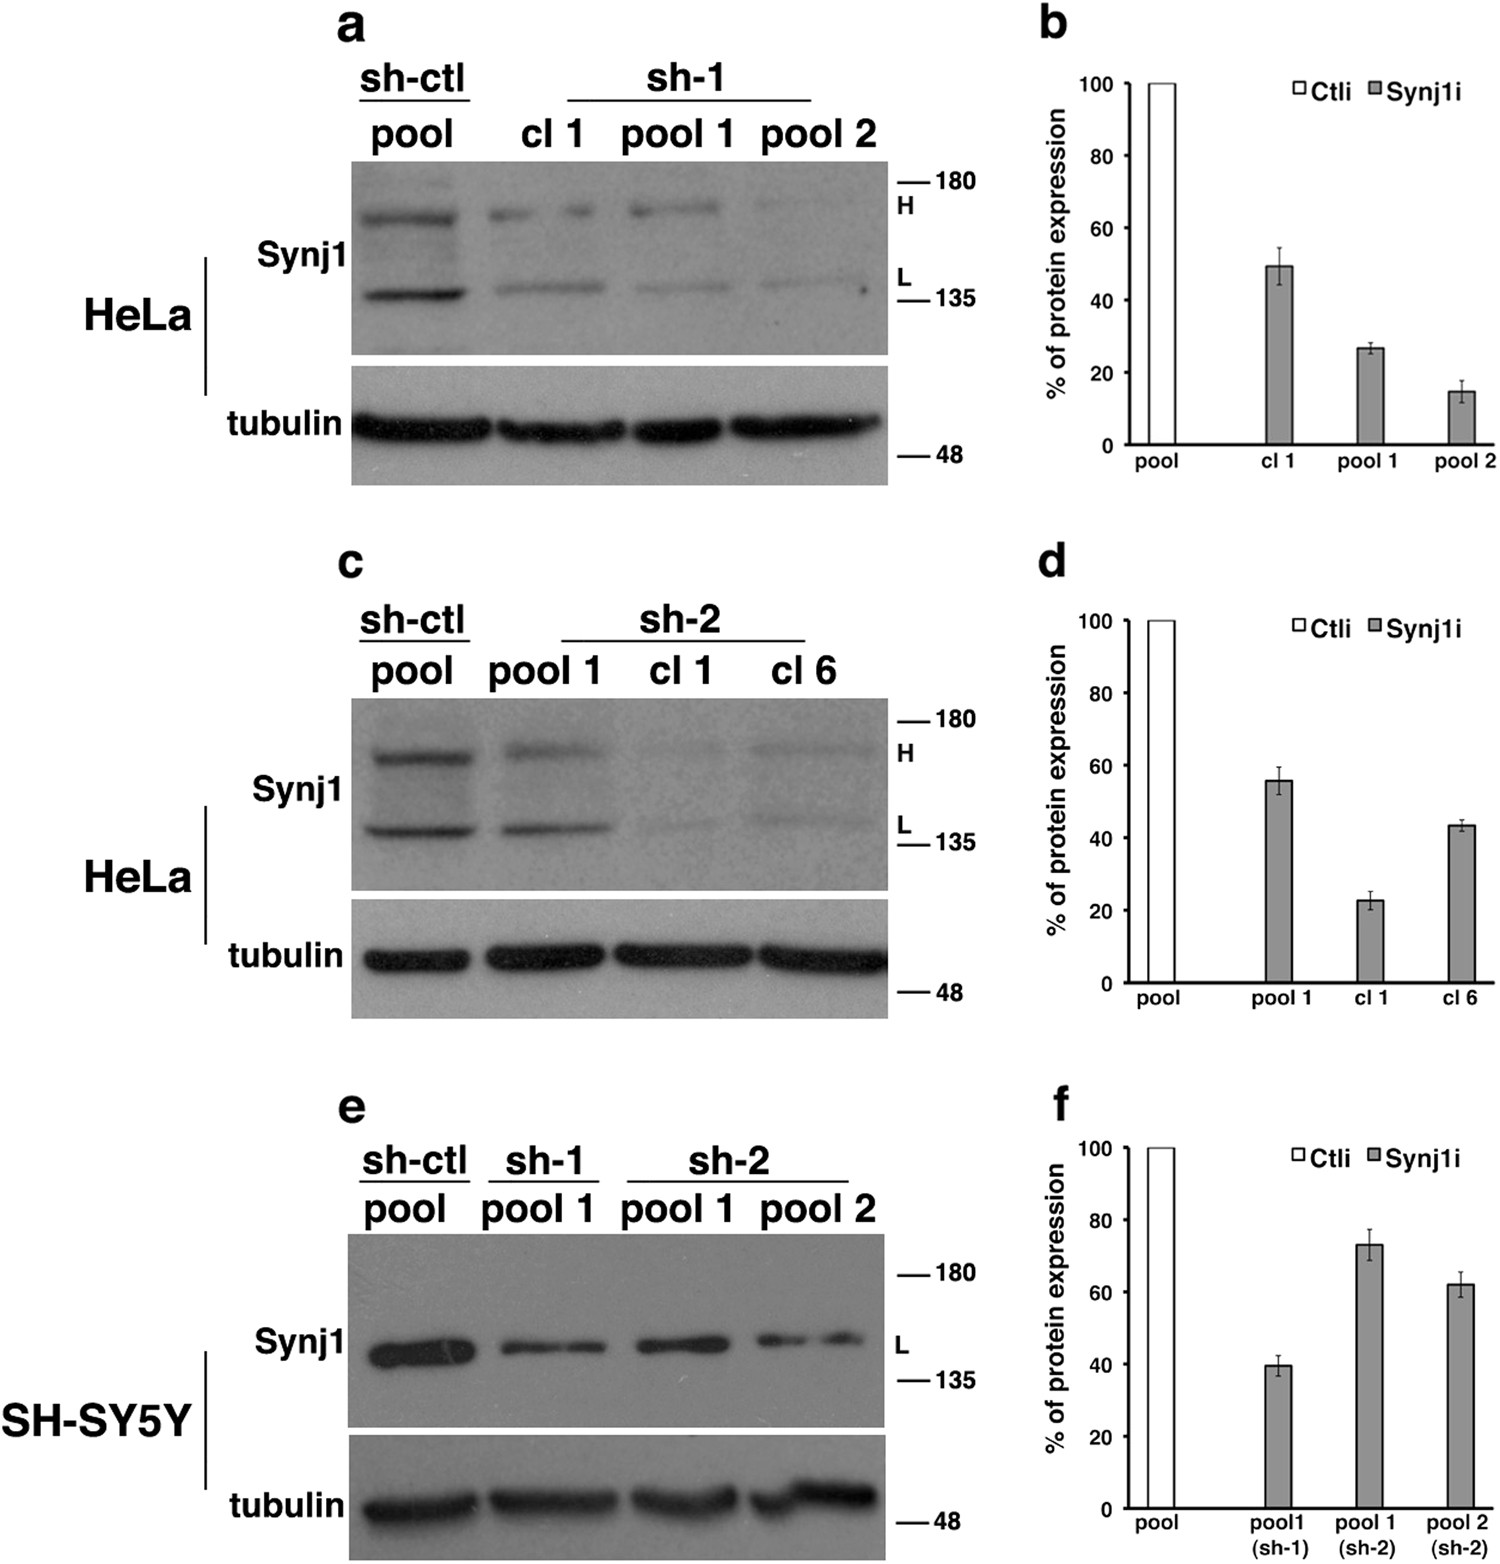 Alteration Of Endosomal Trafficking Is Associated With Early Onset Electrical Earth Pit Diagram Parkinsonism Caused By Synj1 Mutations Cell Death Disease